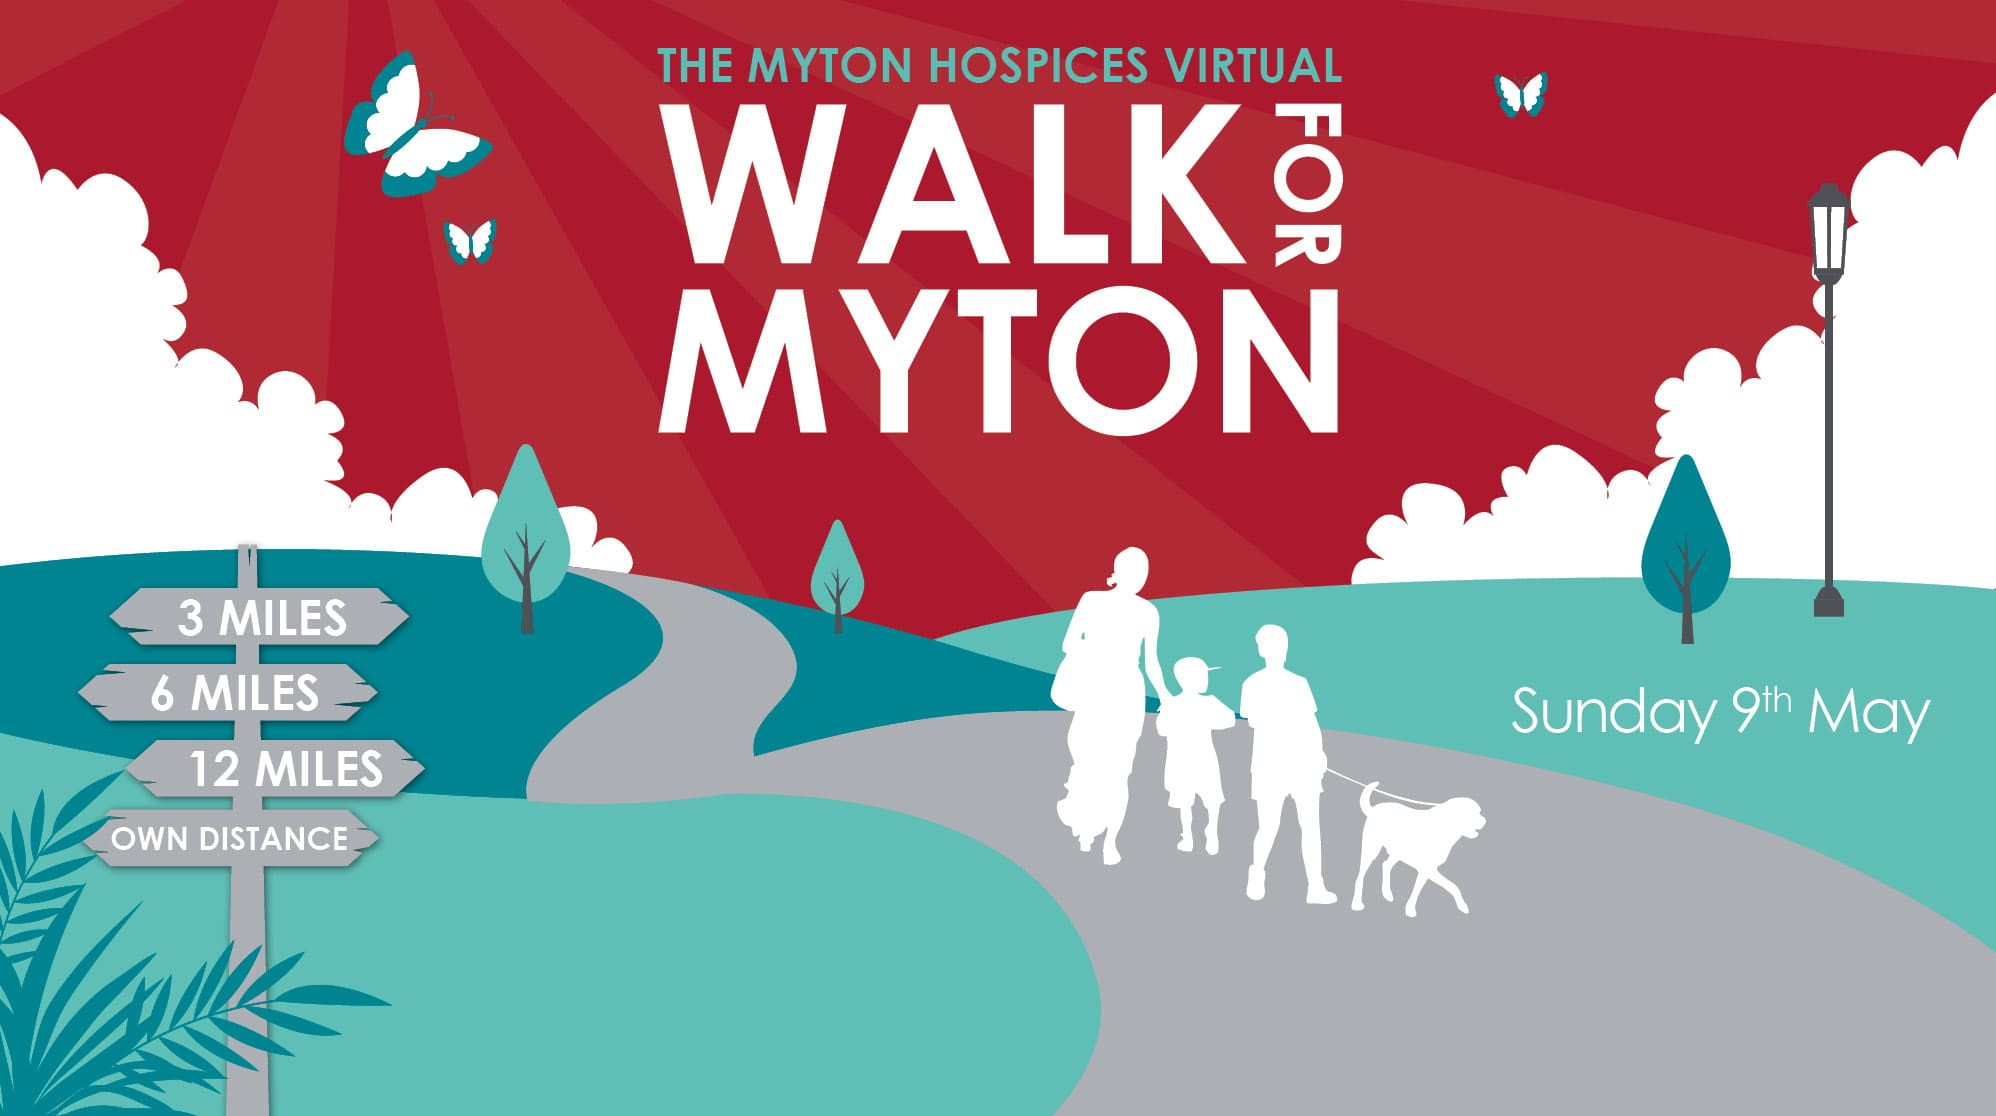 The Myton Hospices - VIrtual Walk for Myton 2021 - Mid Page Banner